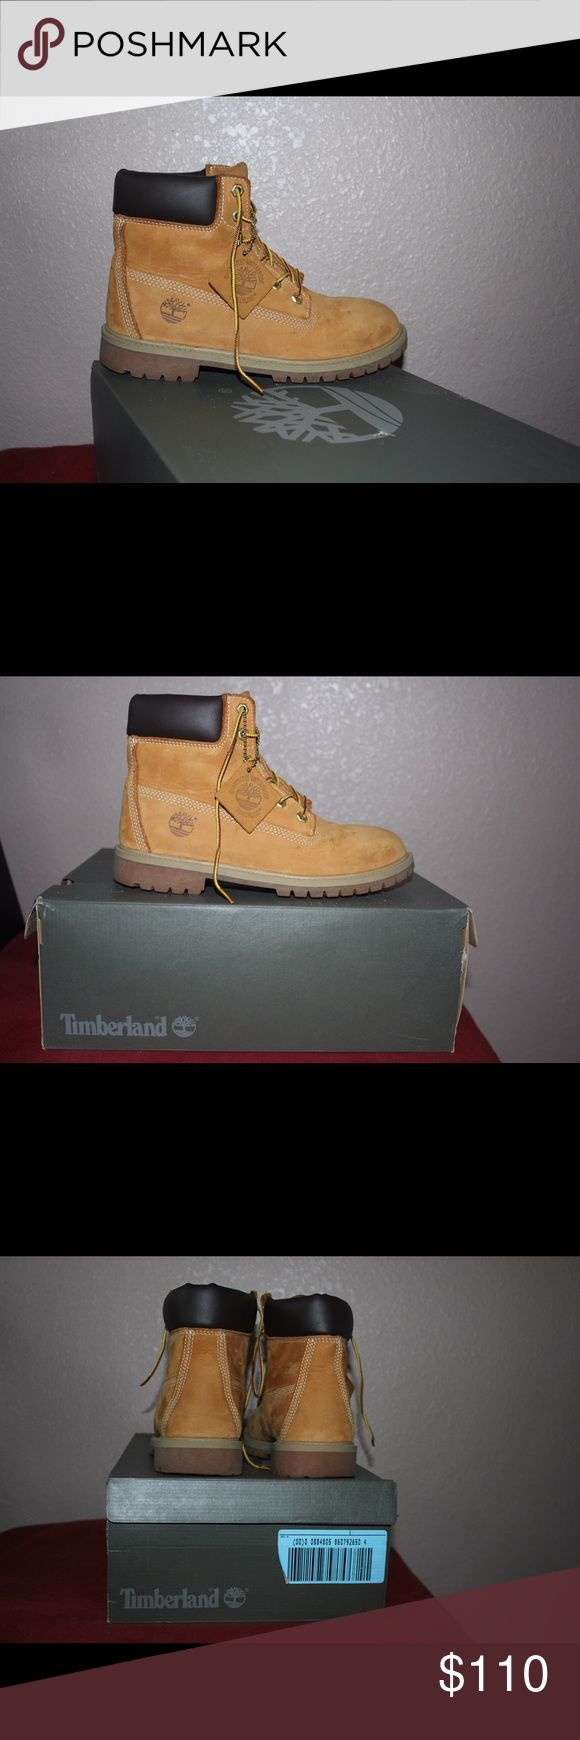 Authentic Timberland Boots Authentic Original Tan Timberland boots . Only worn twice , almost brand new . Box included. Women's Size 9, Men's Size 7. Timberland Shoes Winter & Rain Boots